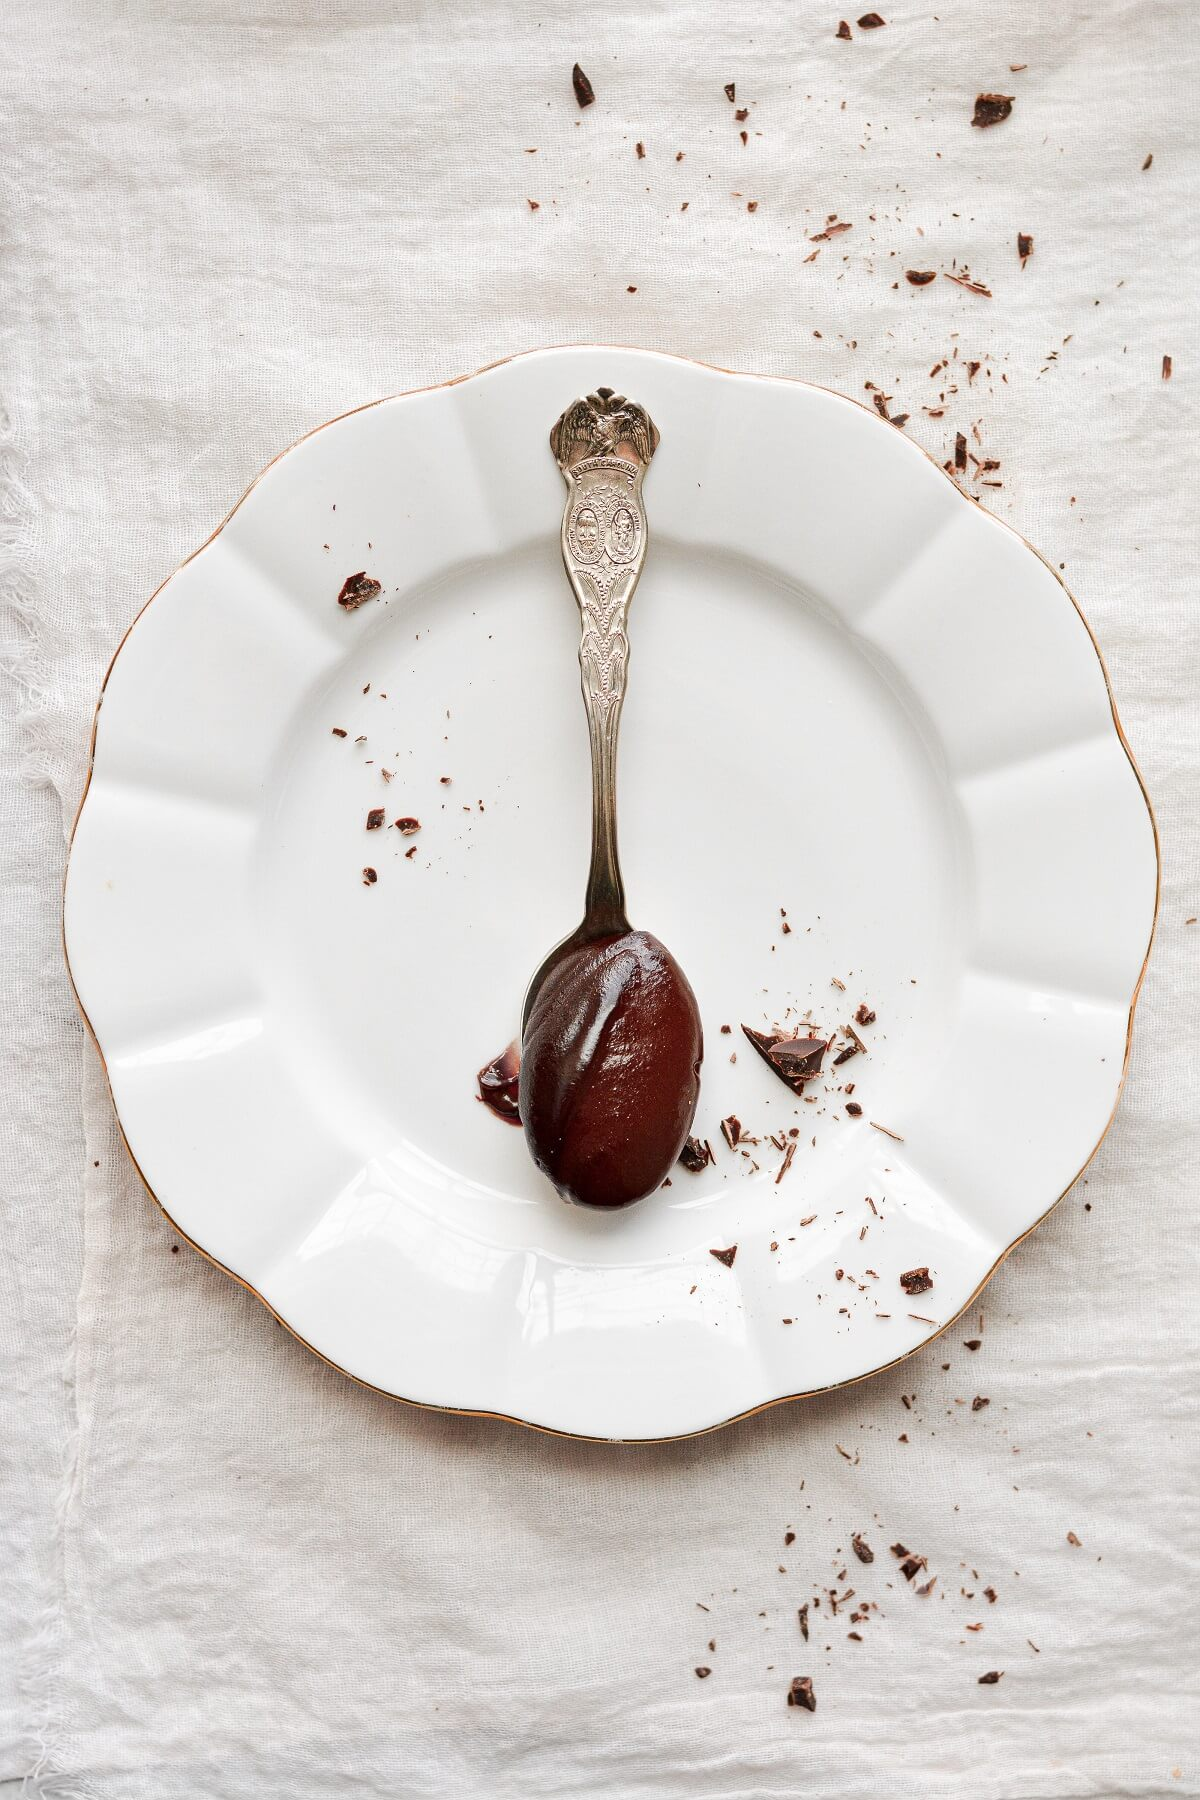 A spoonful of chocolate pudding resting on a white plate.